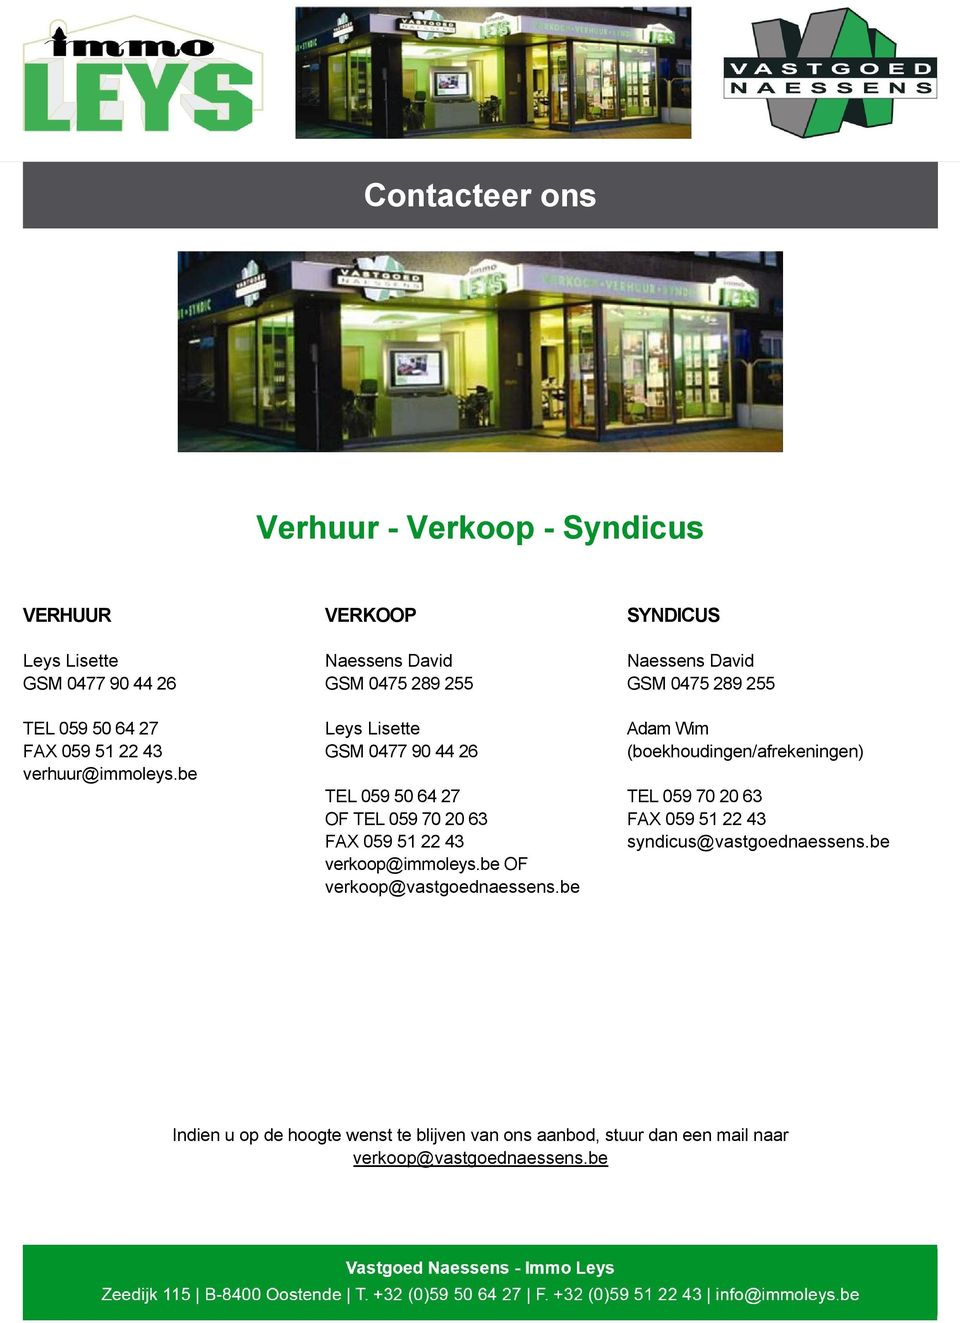 be VERKOOP Naessens David GSM 0475 289 255 Leys Lisette GSM 0477 90 44 26 TEL 059 50 64 27 OF TEL 059 70 20 63 FAX 059 51 22 43